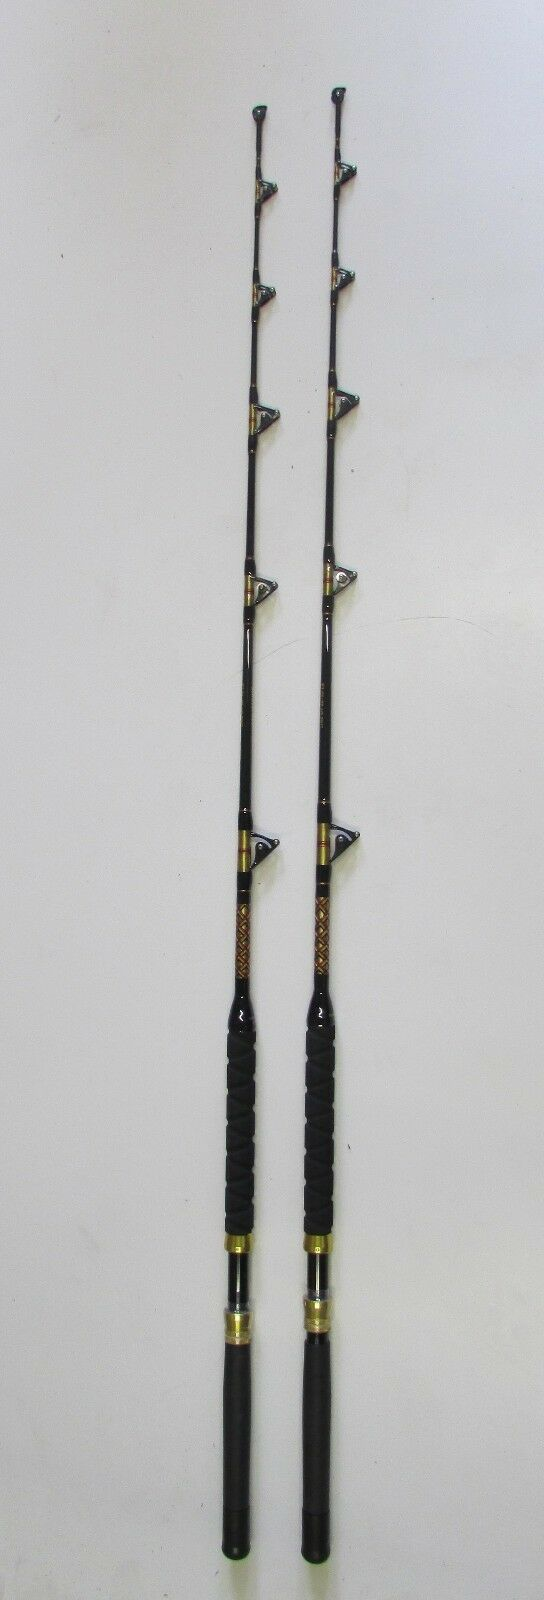 XCALIBER MARINE  PAIR OF SALTWATER TROLLING ROD  50-80lb (gold AND RED TRIM)  offering 100%